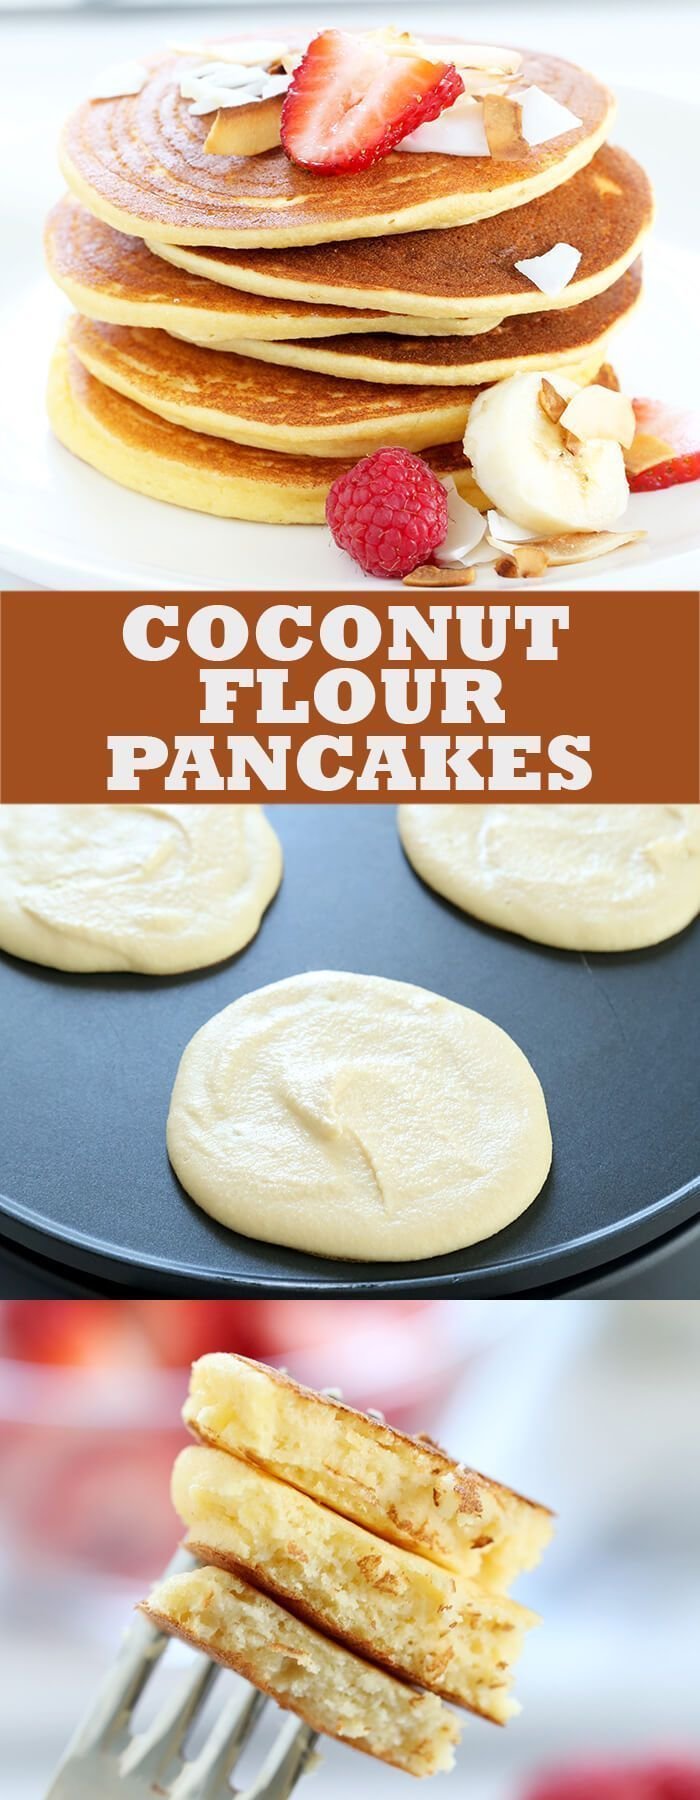 Paleo coconut flour pancakes that are light and fluffy, and made with just a few basic ingredients. A quick and easy, low carb gluten free breakfast!(Paleo Mayonaise Store Bought)